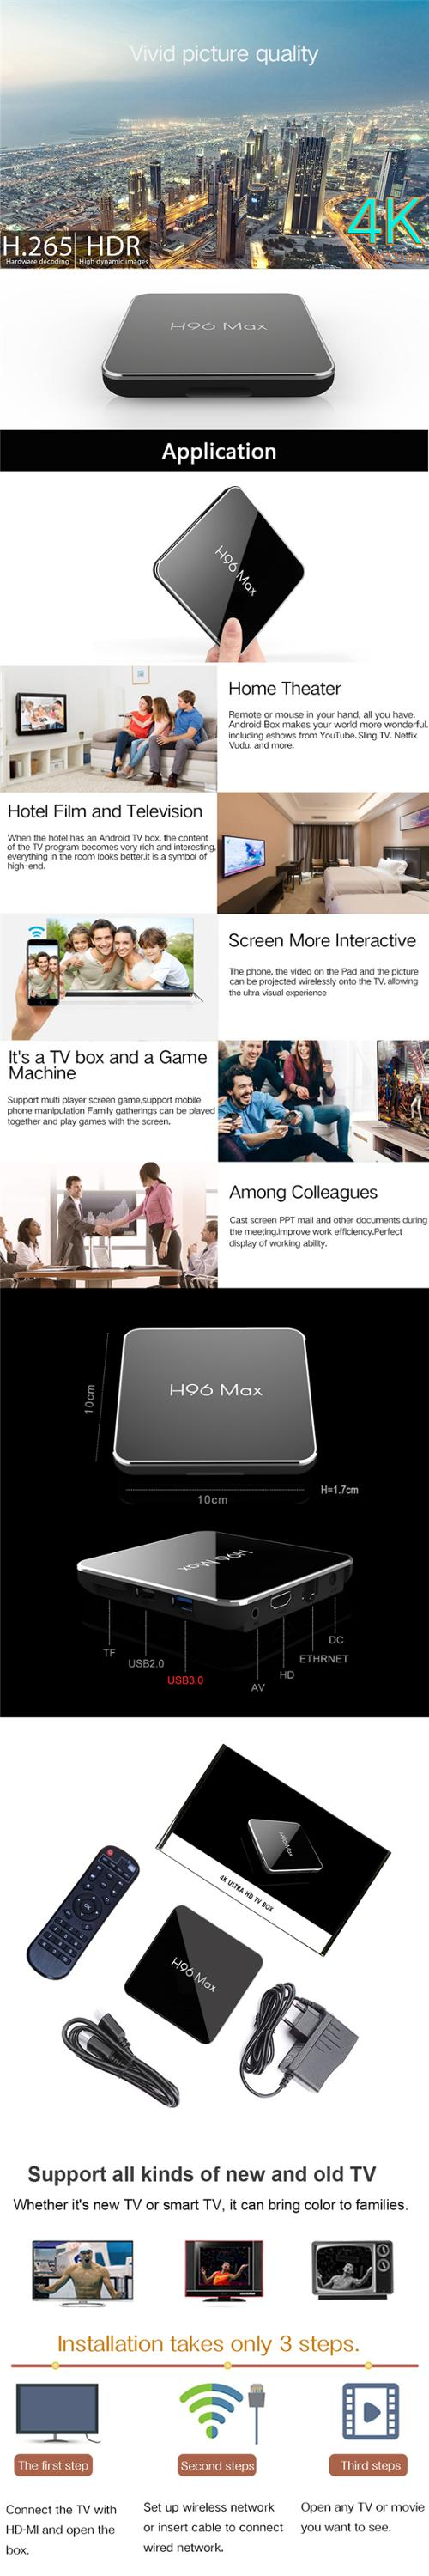 video android amlogic tv box h96 max s905x2 4gb 64gb set-top box smart android tv box amlogic S905X2 ott android 8.1